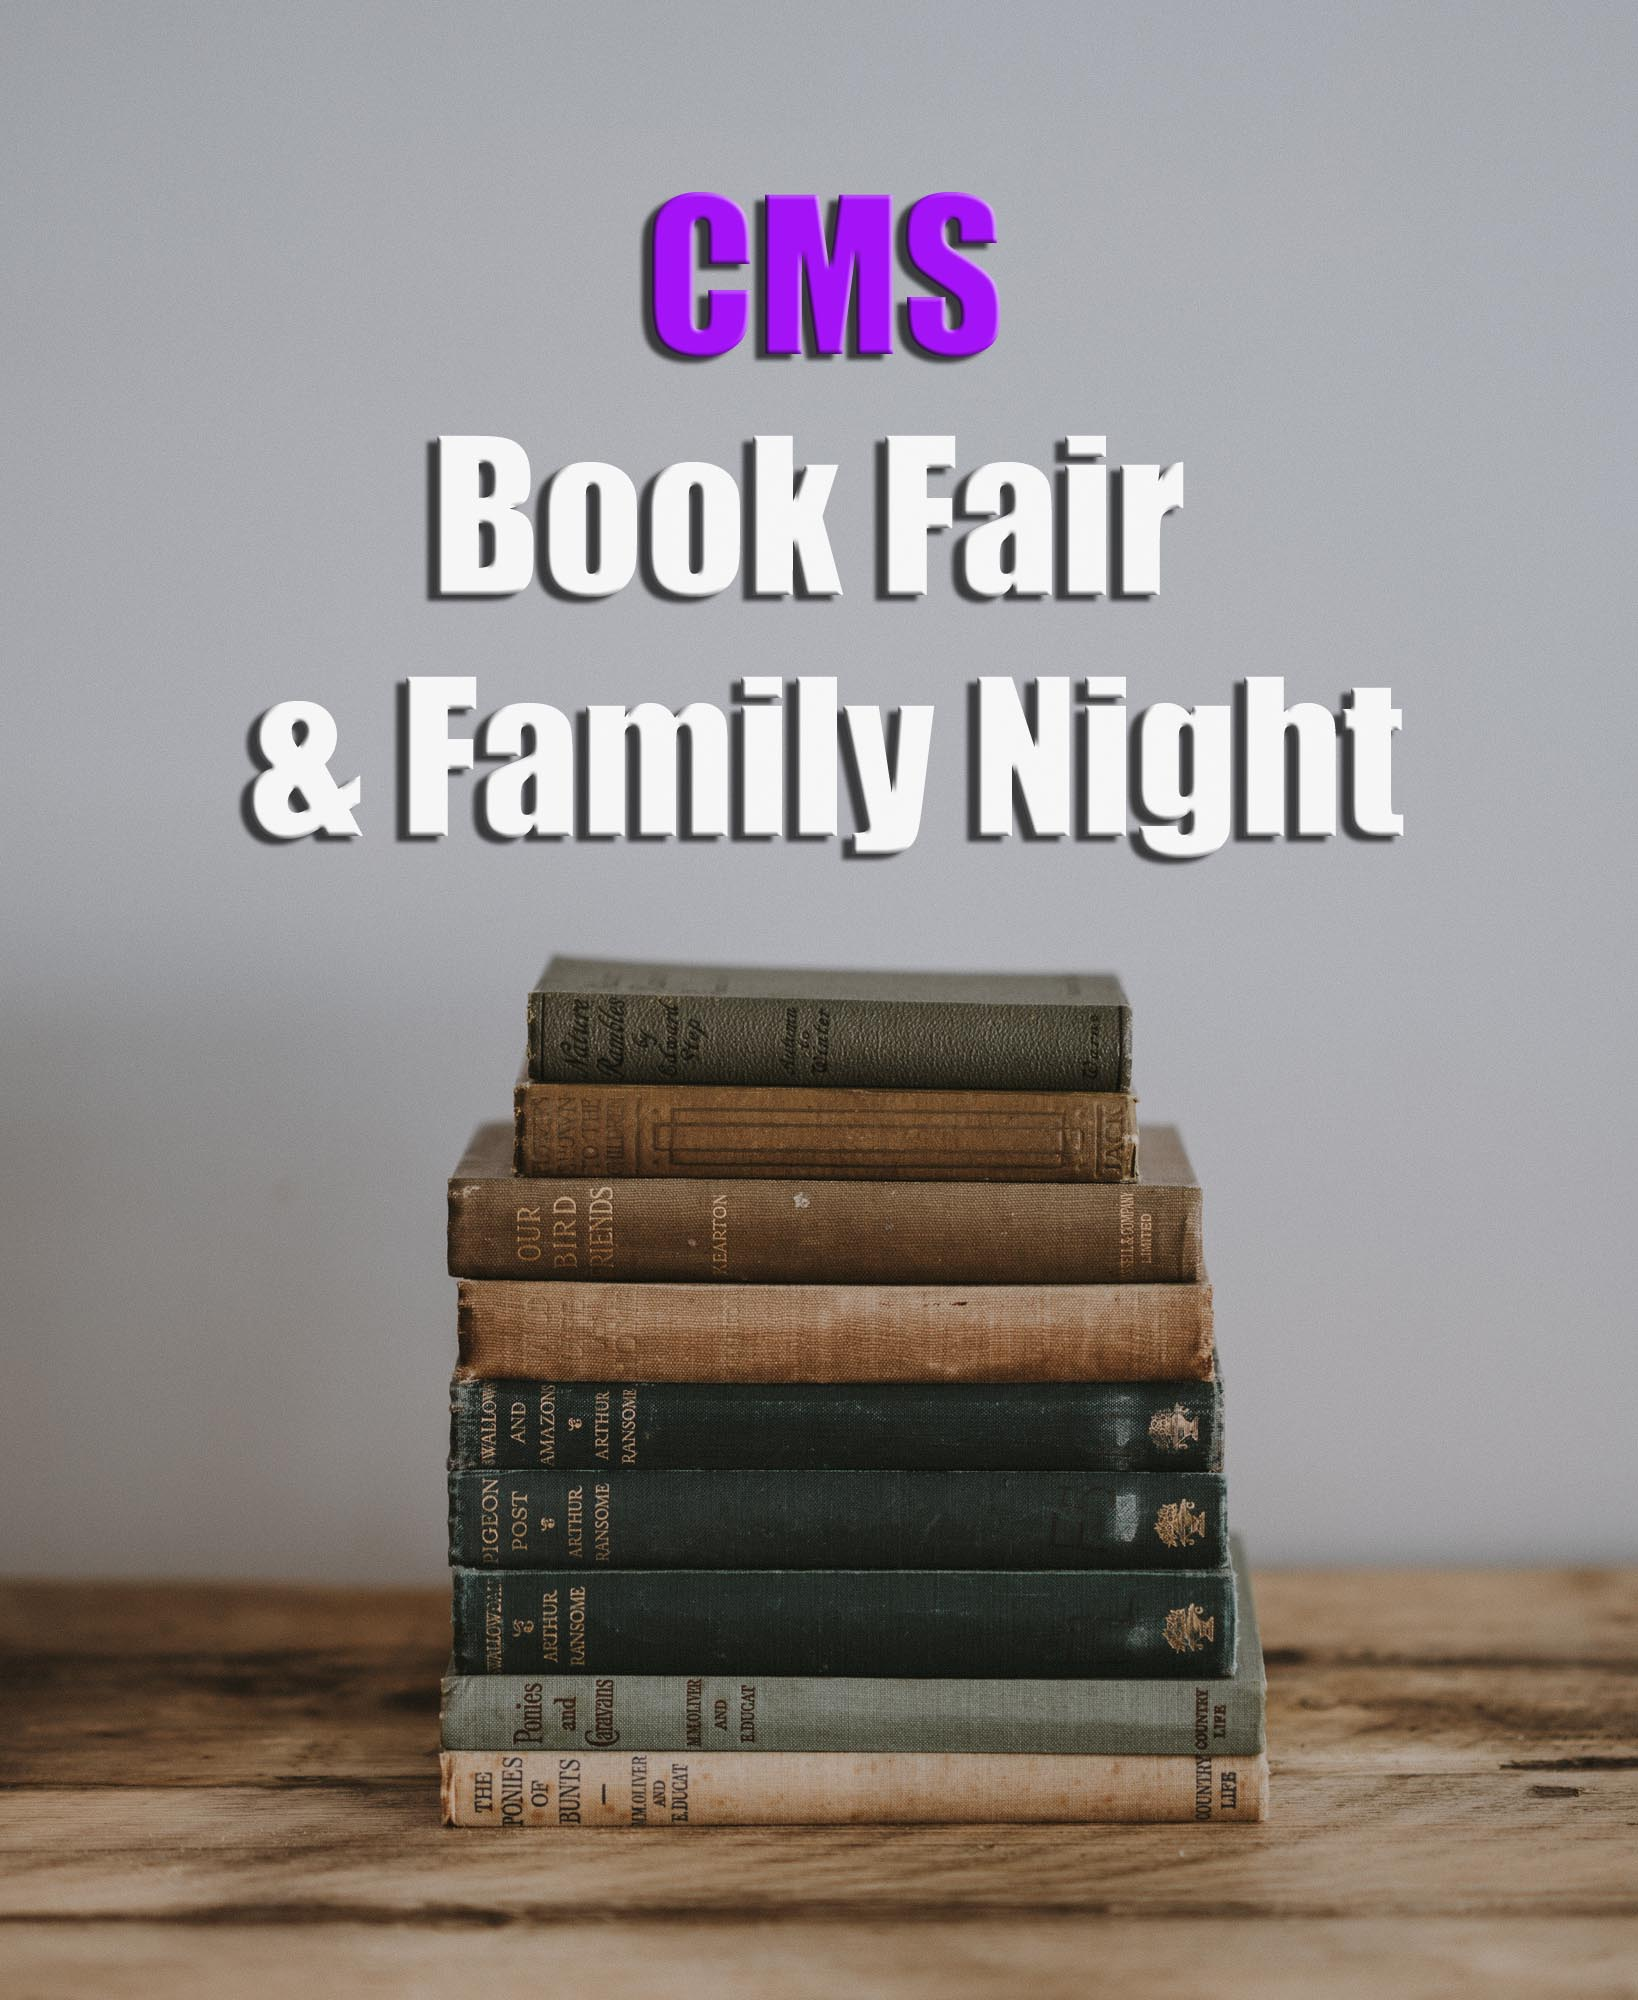 CMS Book Fair & Family Night